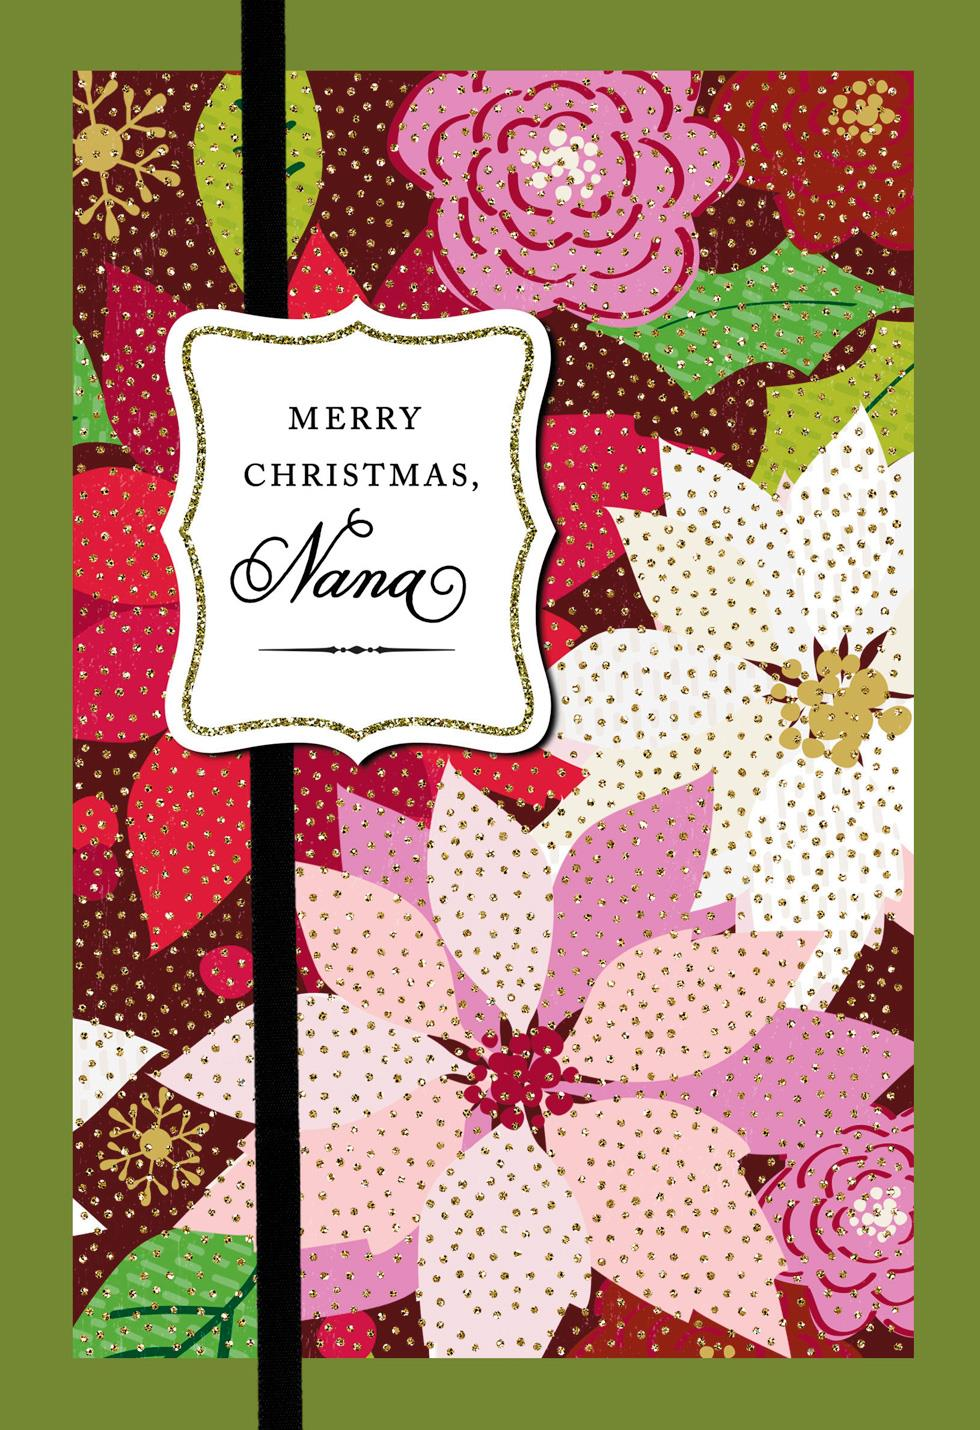 Colorful Poinsettias Christmas Card For Nana Greeting